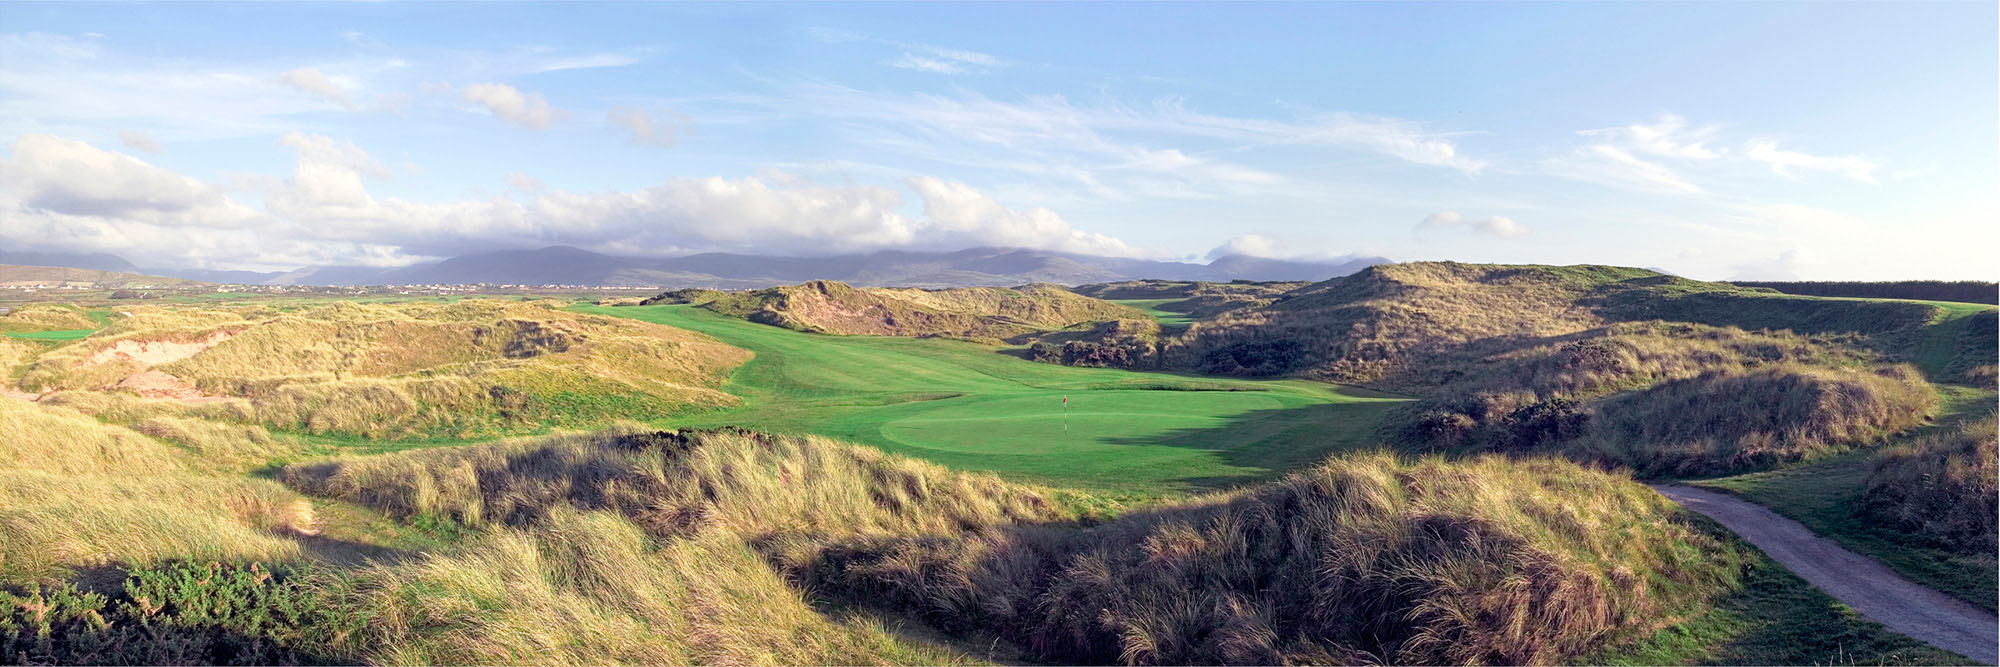 Golf Course Image - Waterville No. 15